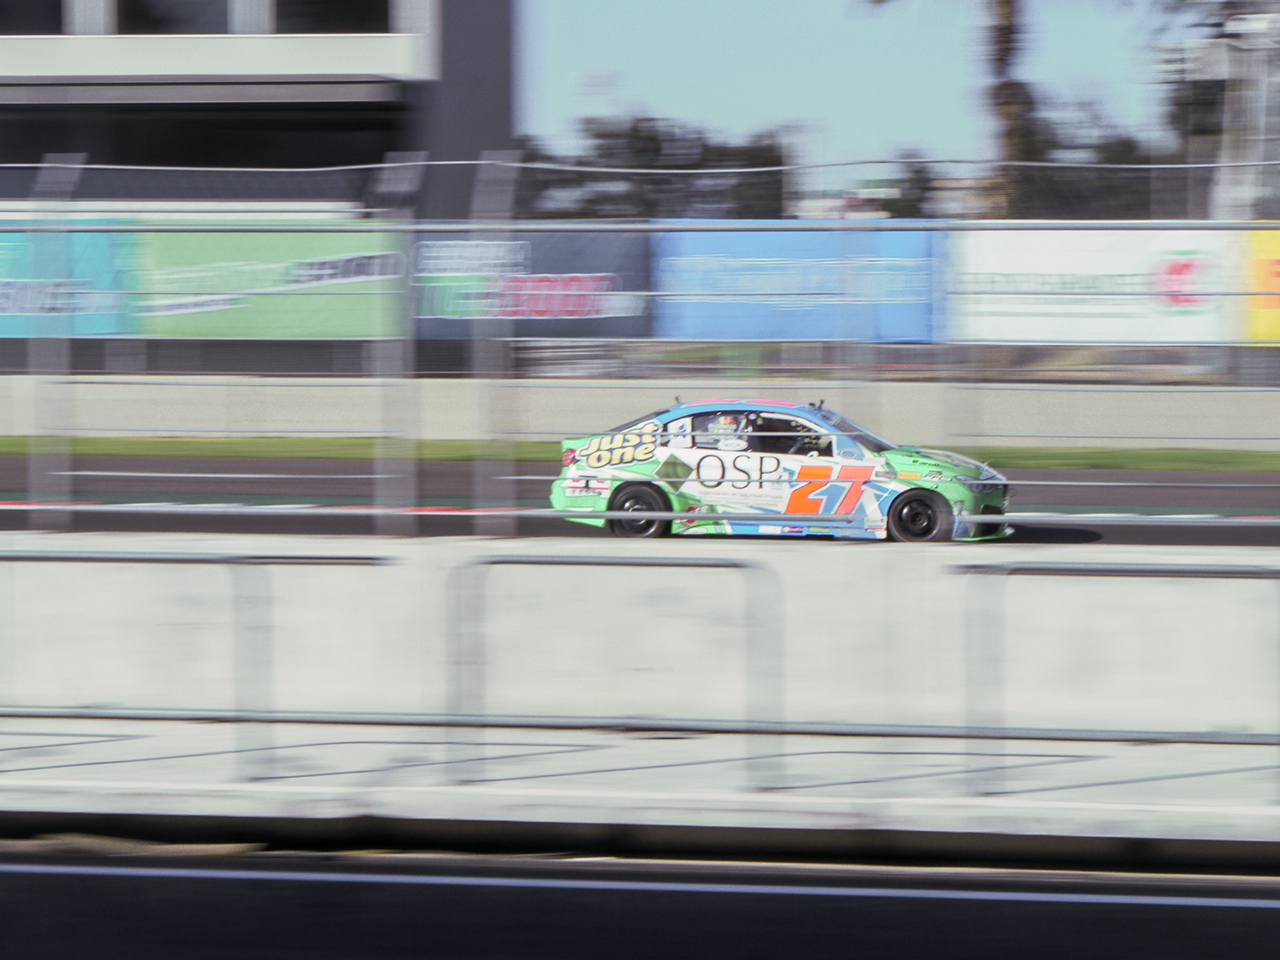 2.0 liter super touring car roars down the front straight.